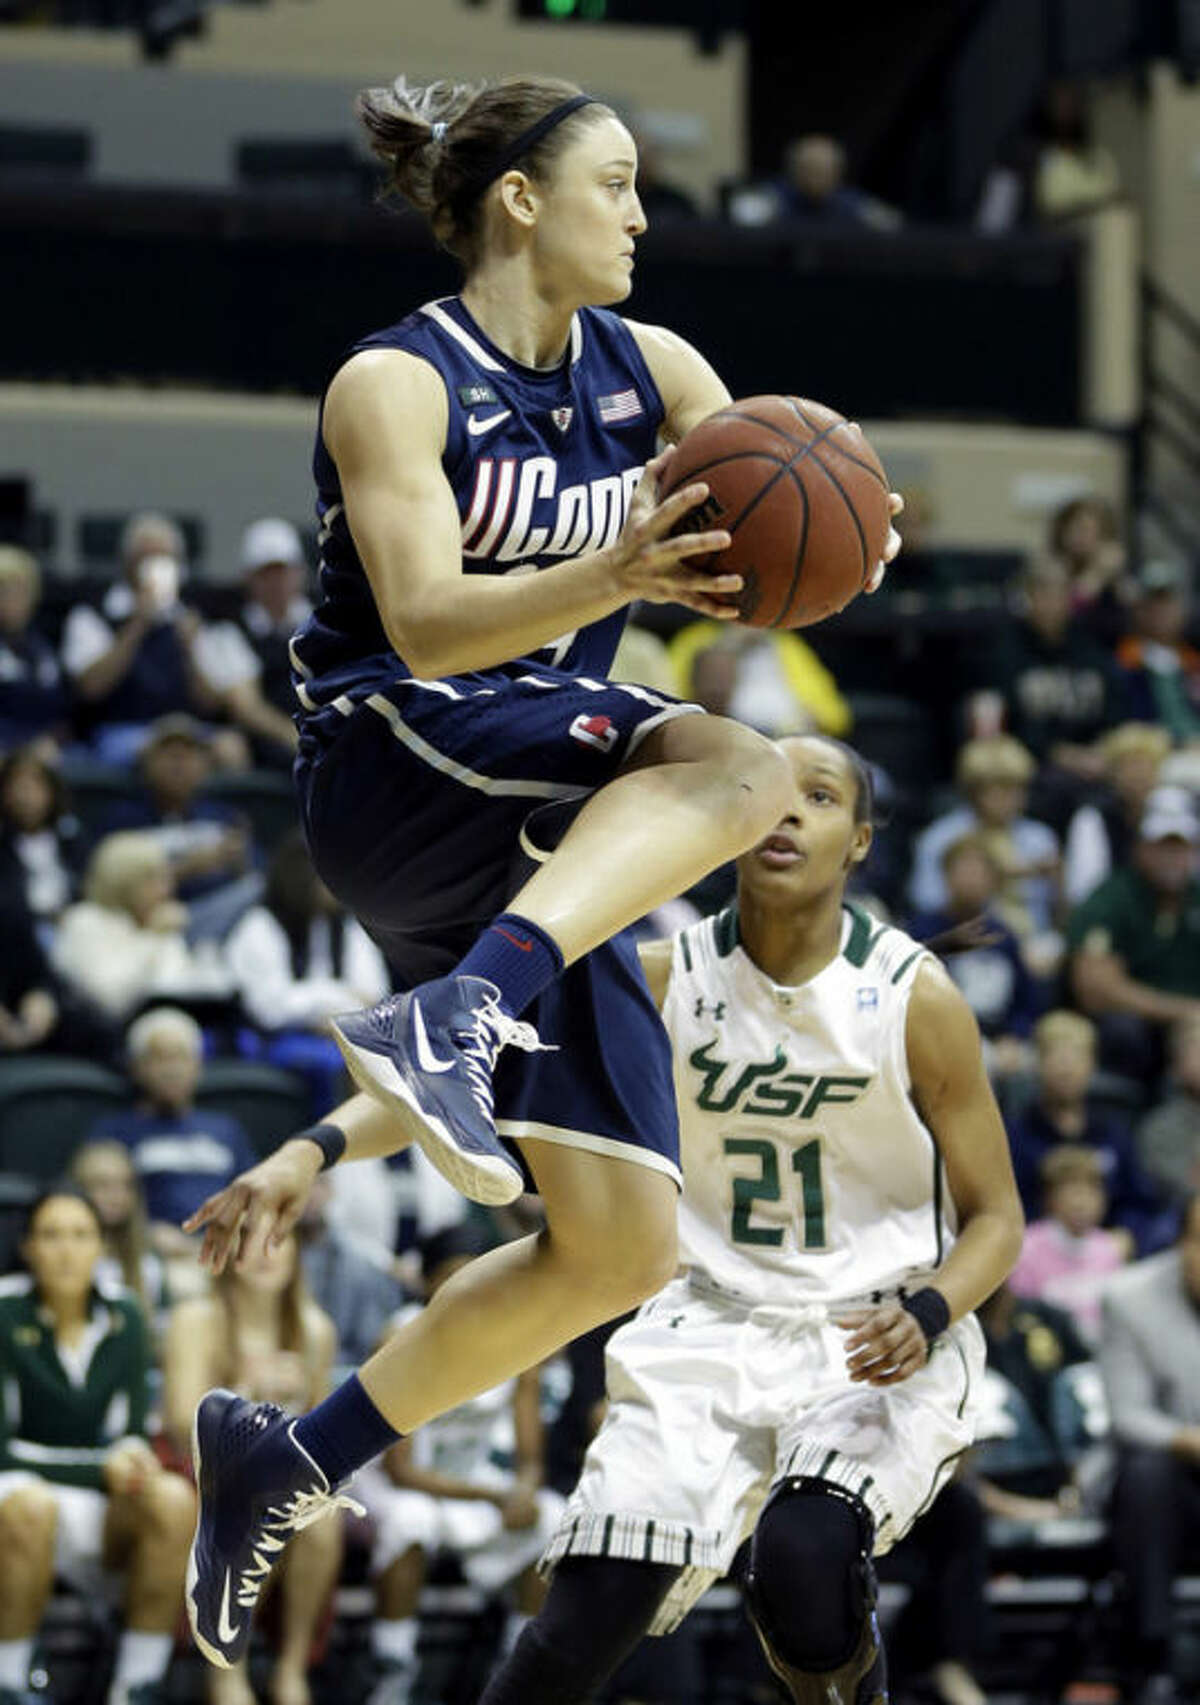 Connecticut guard Kelly Faris (34) grabs a rebound in front of South Florida guard Andrea Smith (21) during the first half of an NCAA college basketball game Saturday, March 2, 2013, in Tampa, Fla. (AP Photo/Chris O'Meara)